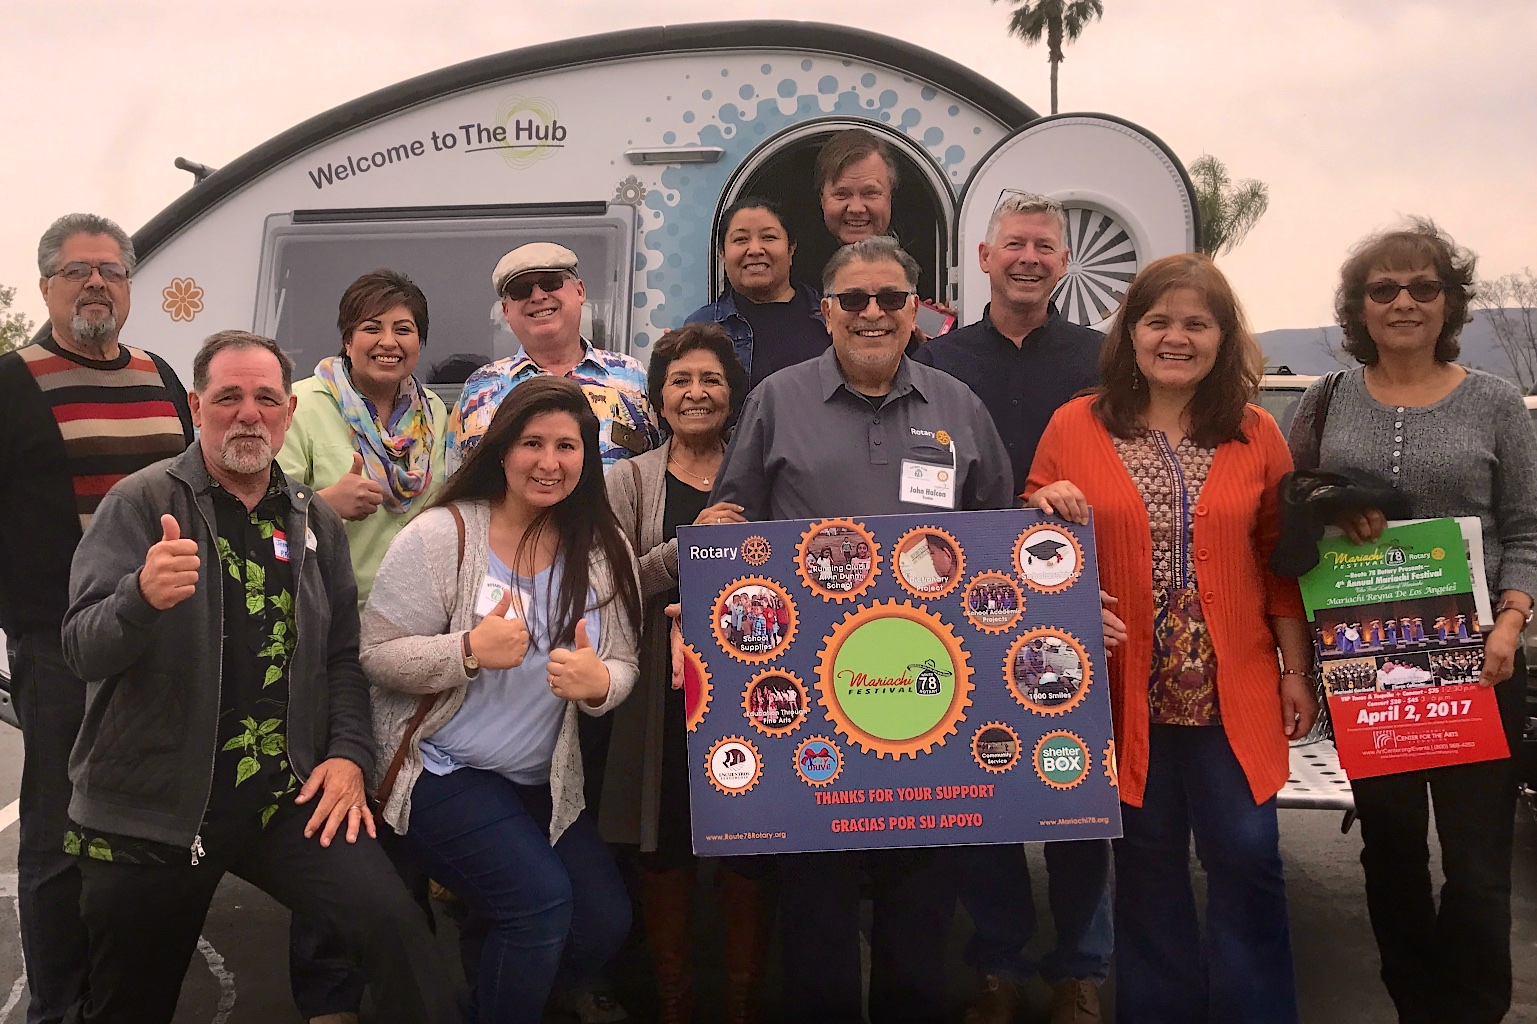 Route 78 Rotary Club, San Marcos, CA. The Encuentros Leadership program is one of the many North County projects supported by Route 78 Rotary.